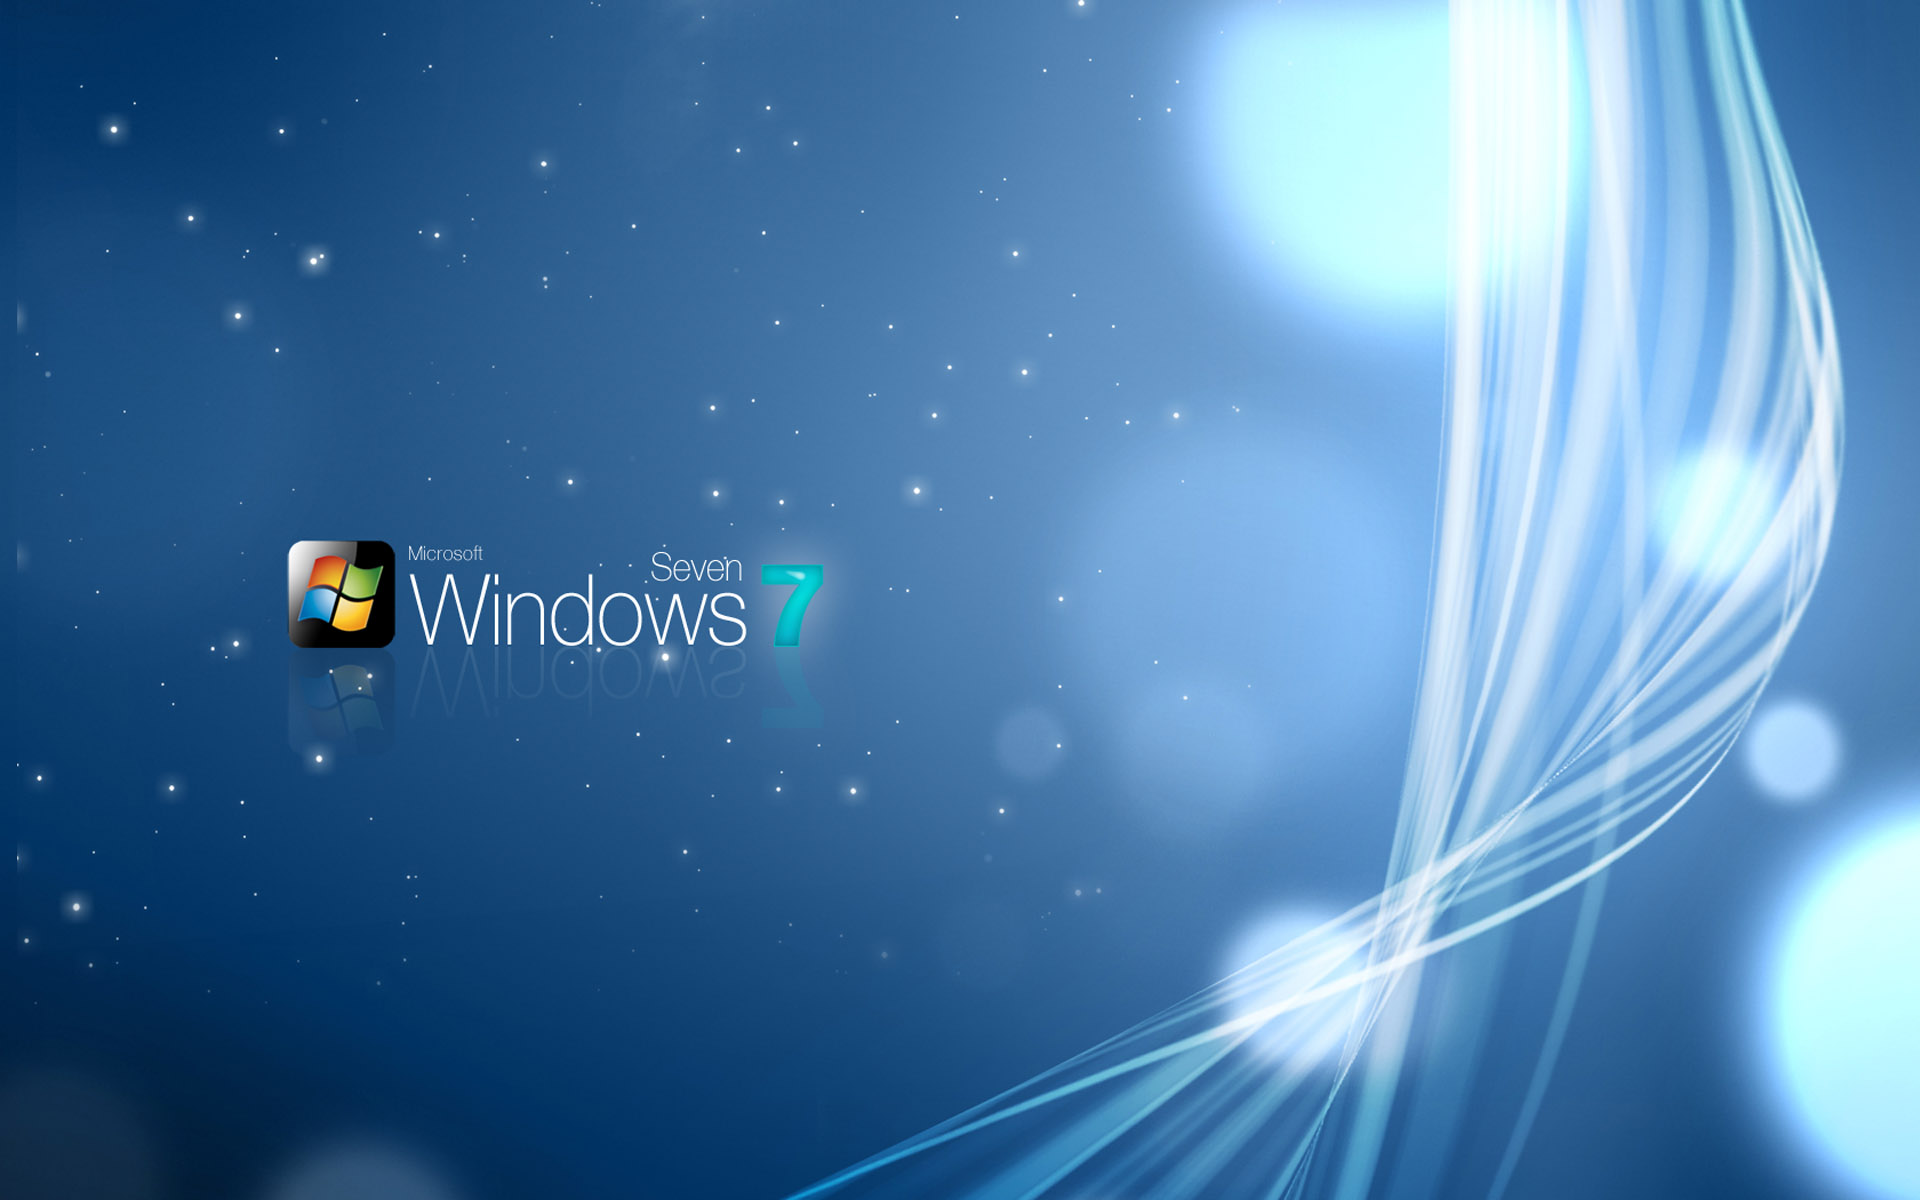 Windows Desktop Wallpaper 12182